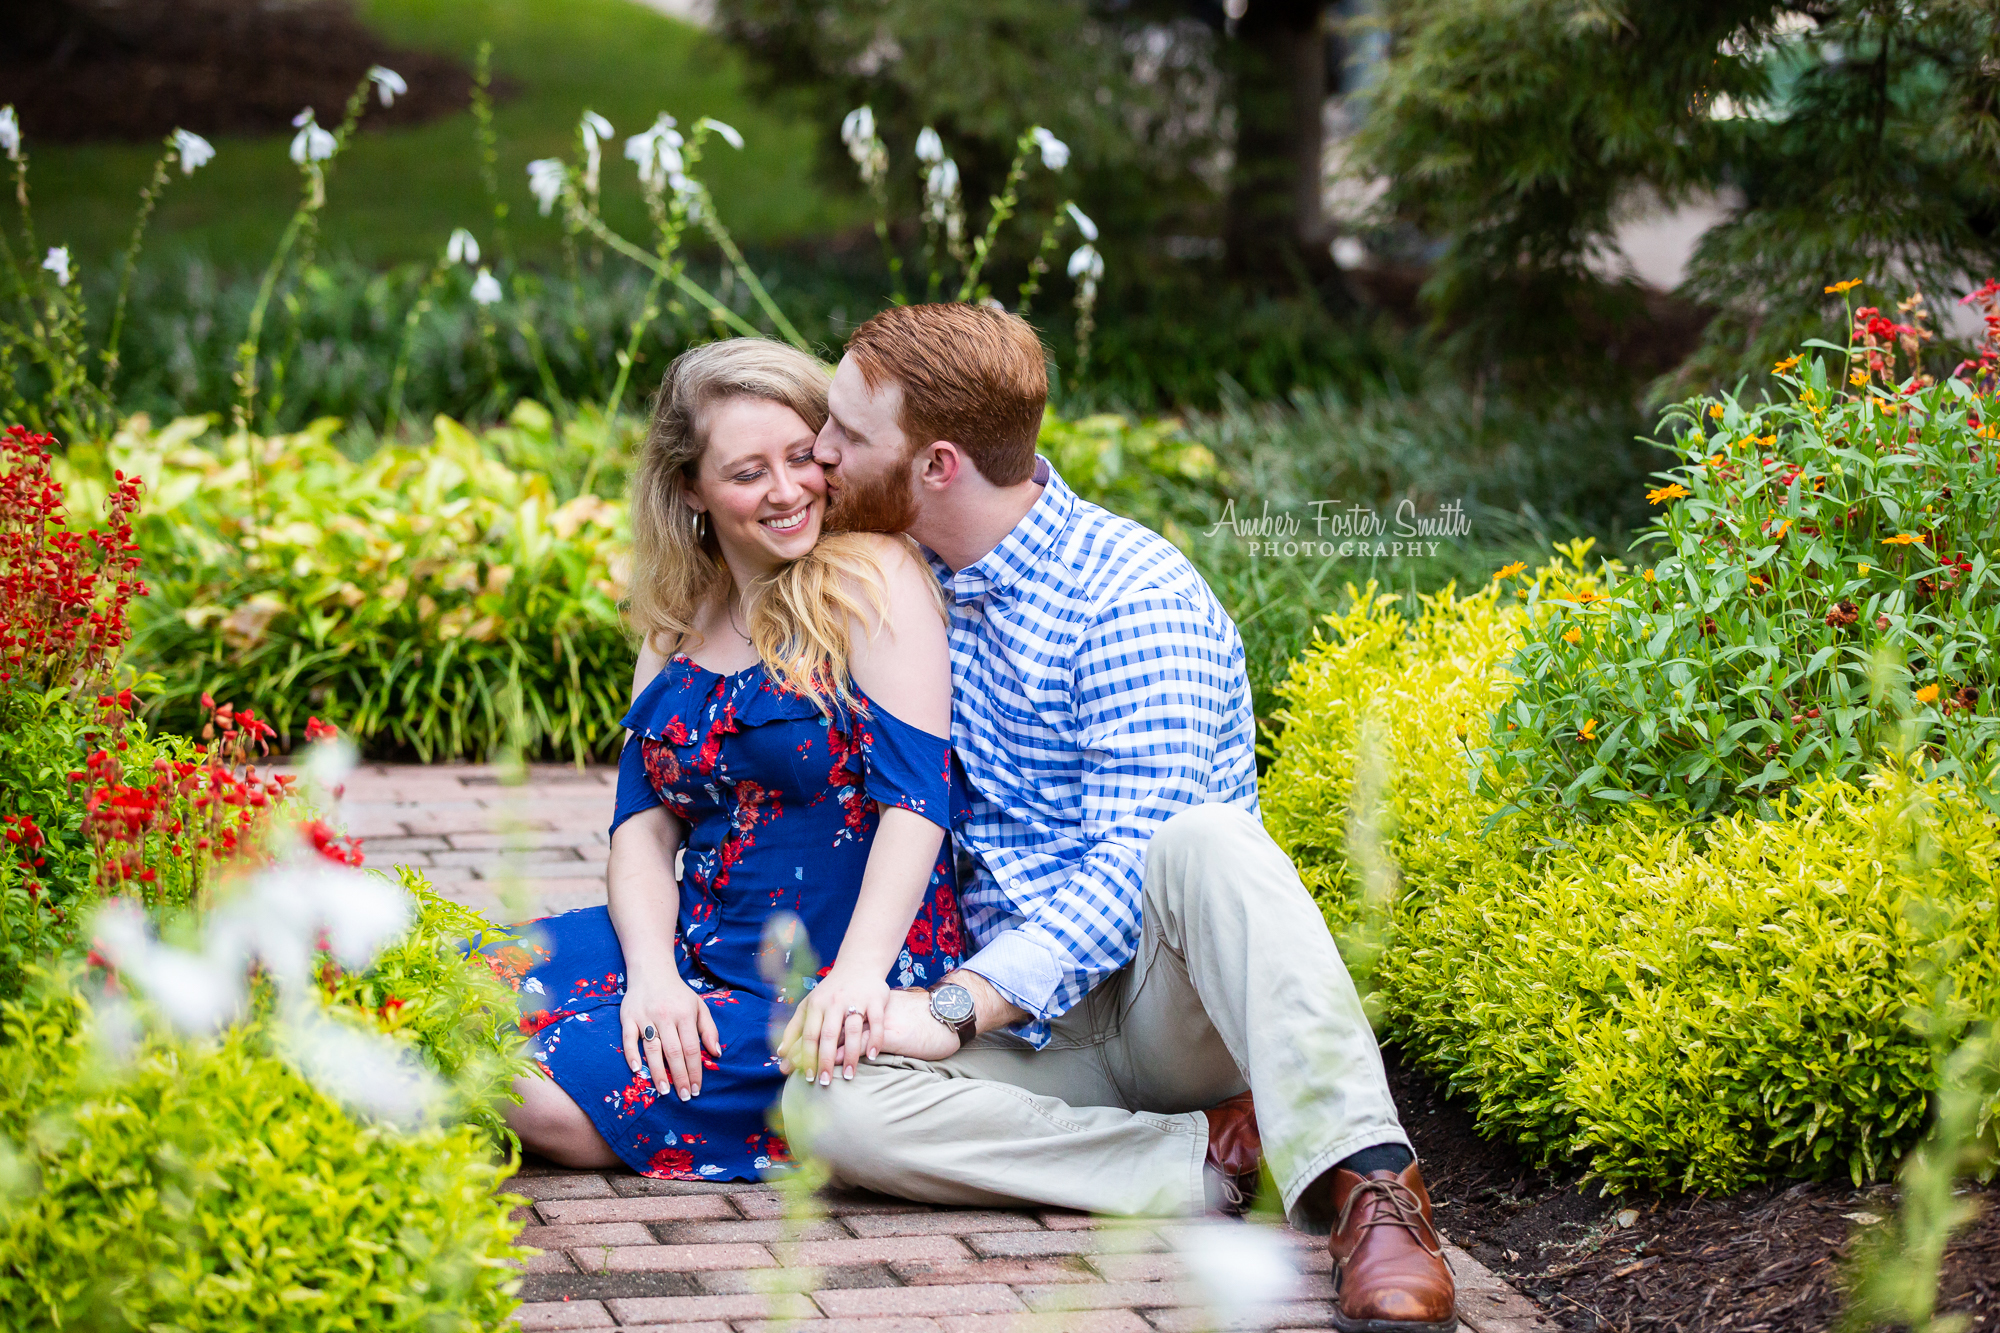 Amber Foster Smith Photography - Holly Springs, NC | Holly Springs Wedding and Engagement Photography